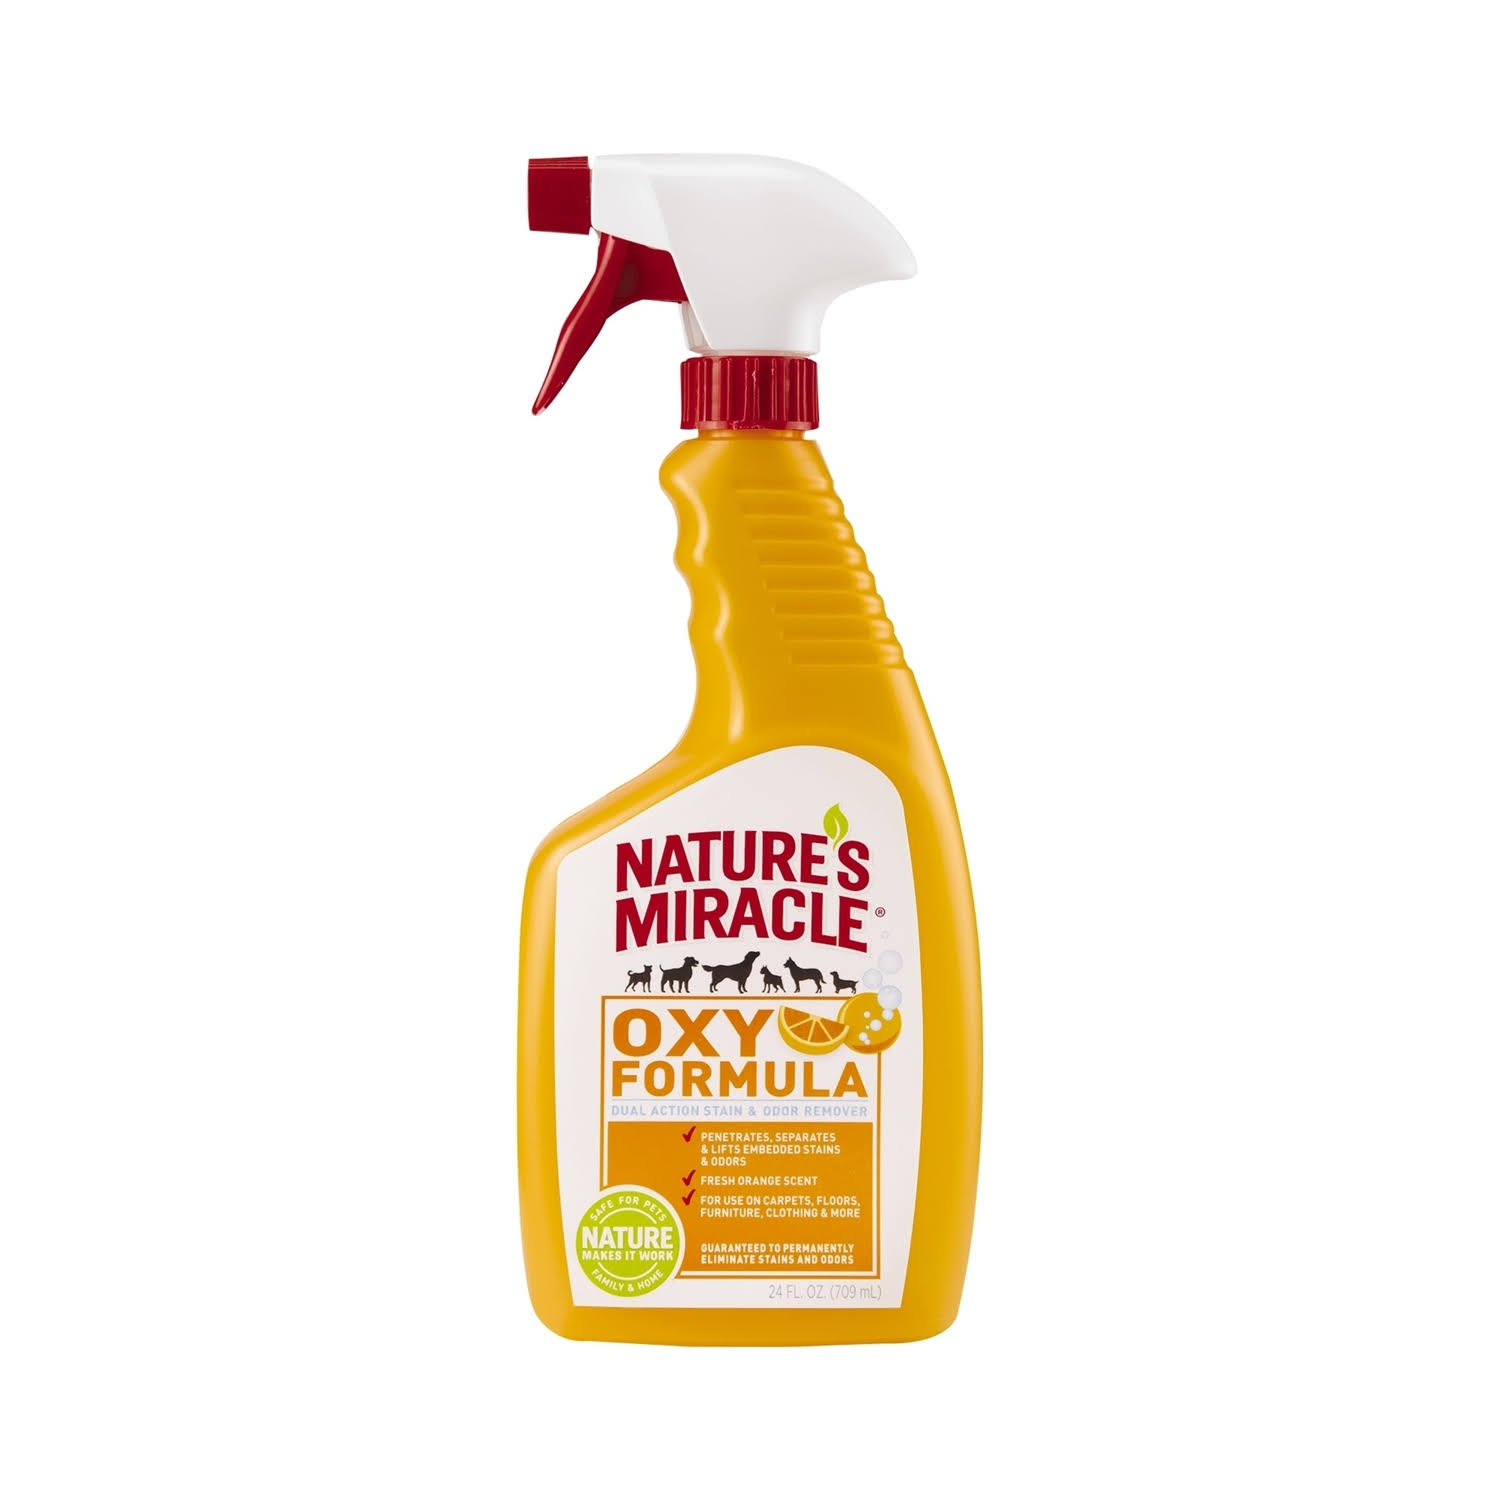 Nature's Miracle Orange-Oxy Stain & Odor Remover 24oz